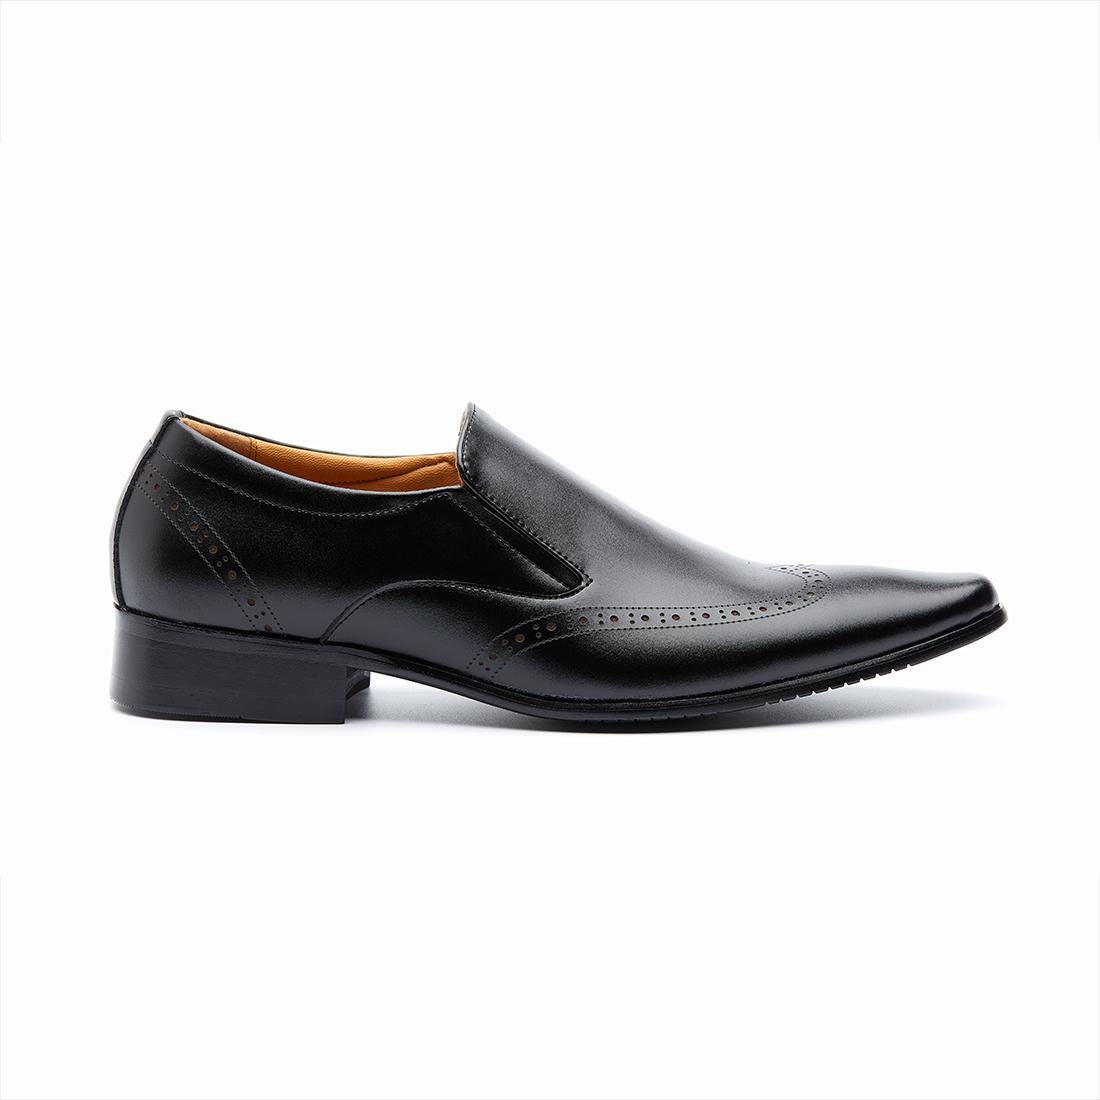 Kings Collection Durham Loafer Black Intl Lowest Price